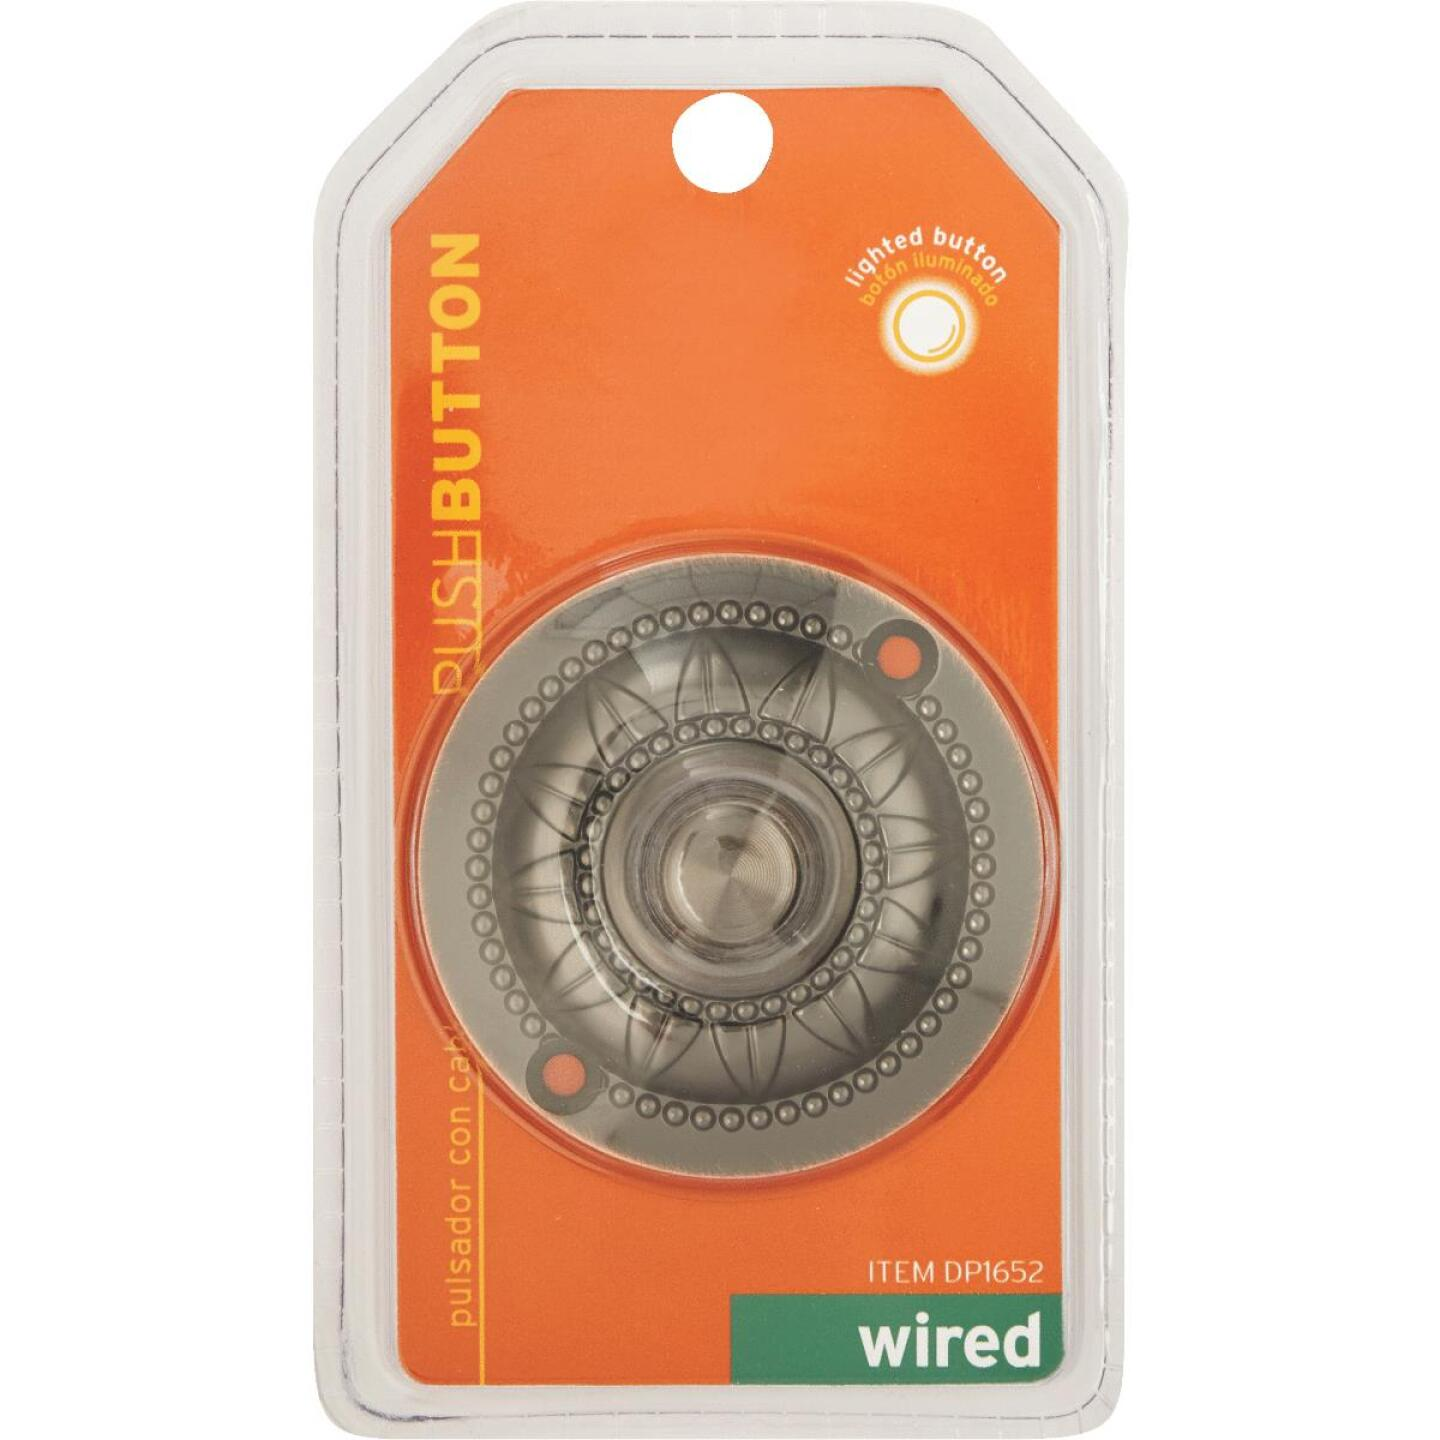 IQ America Wired Oil Rubbed Bronze Medallion Design Lighted Doorbell Push-Button Image 2